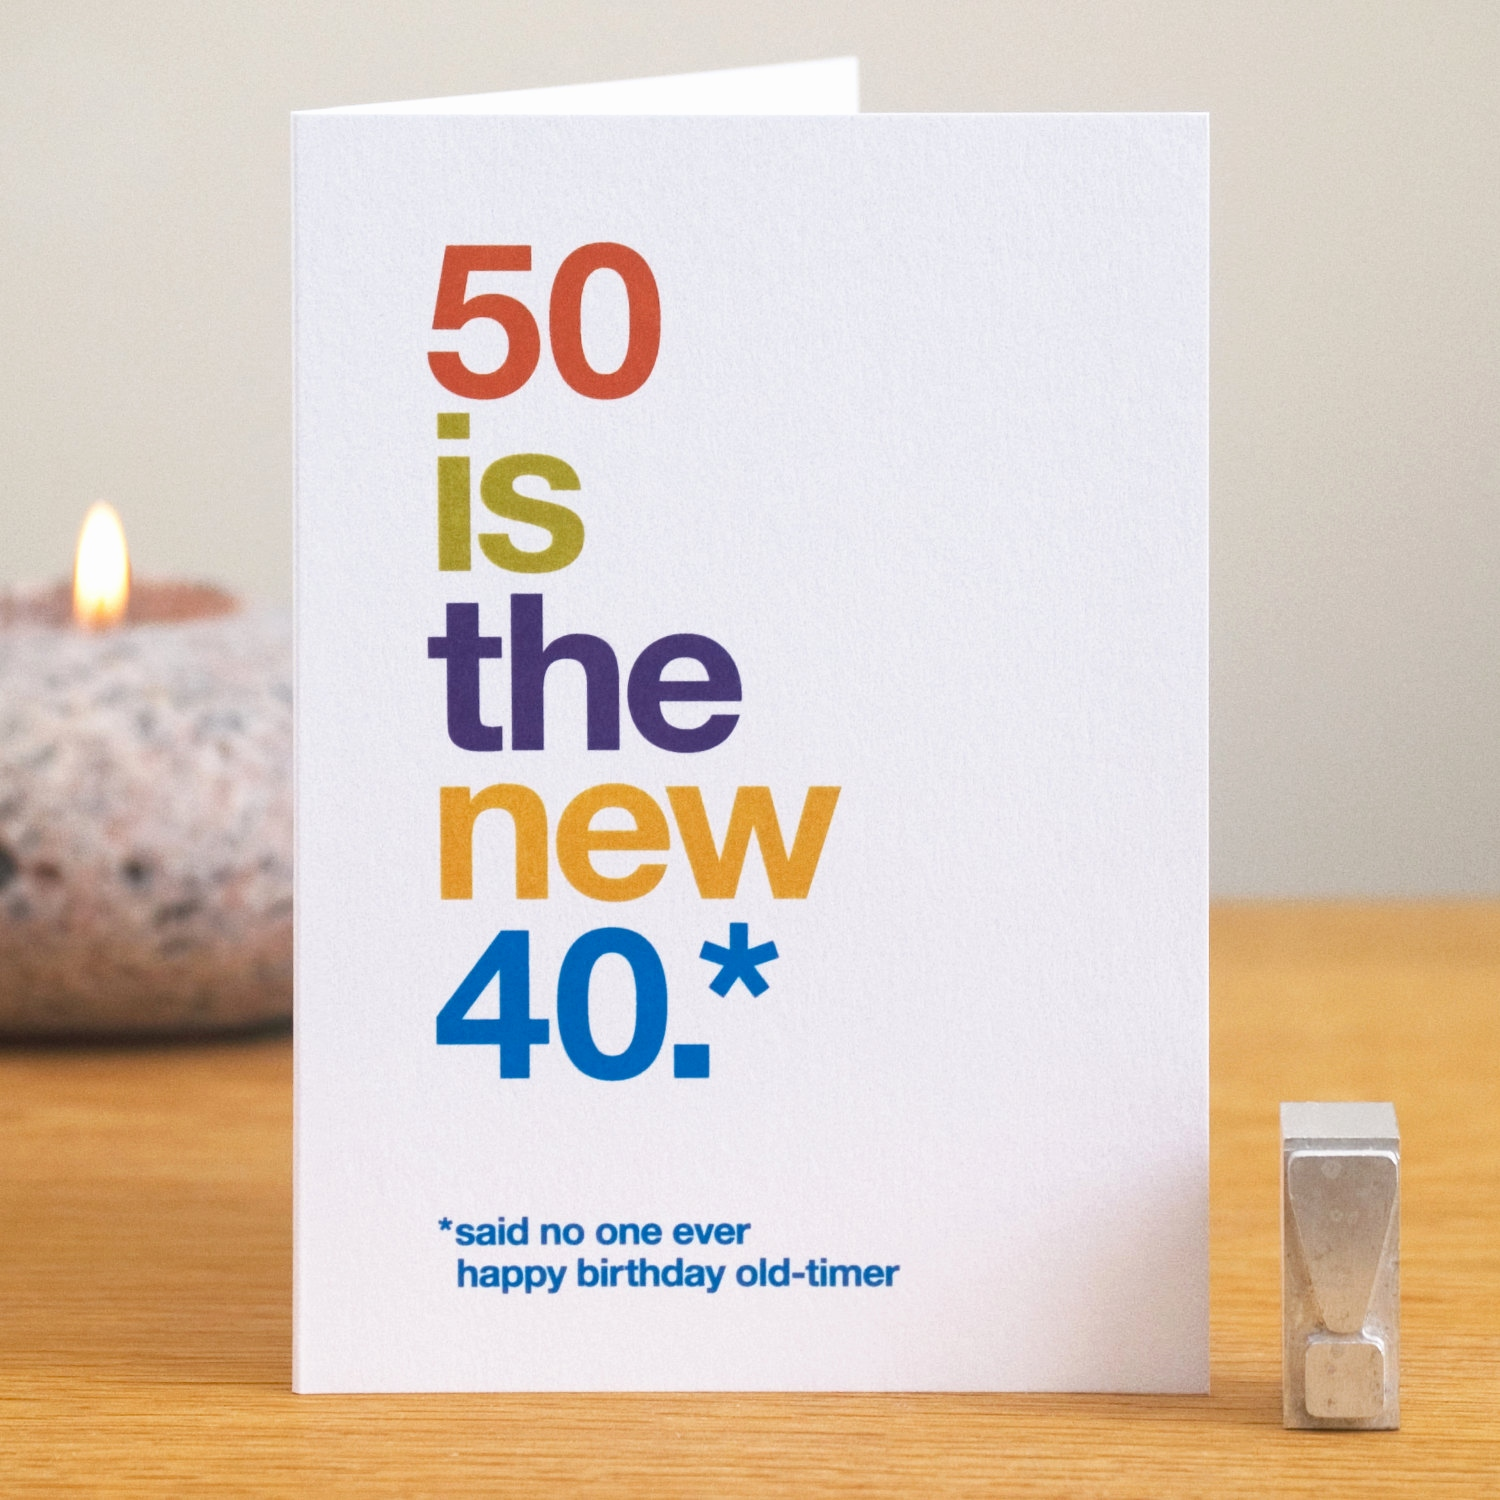 50th birthday greeting cards printable ; happy-birthday-cards-free-ecards-fresh-50th-birthday-ecard-funny-girlfriend-birthday-cards-of-happy-birthday-cards-free-ecards